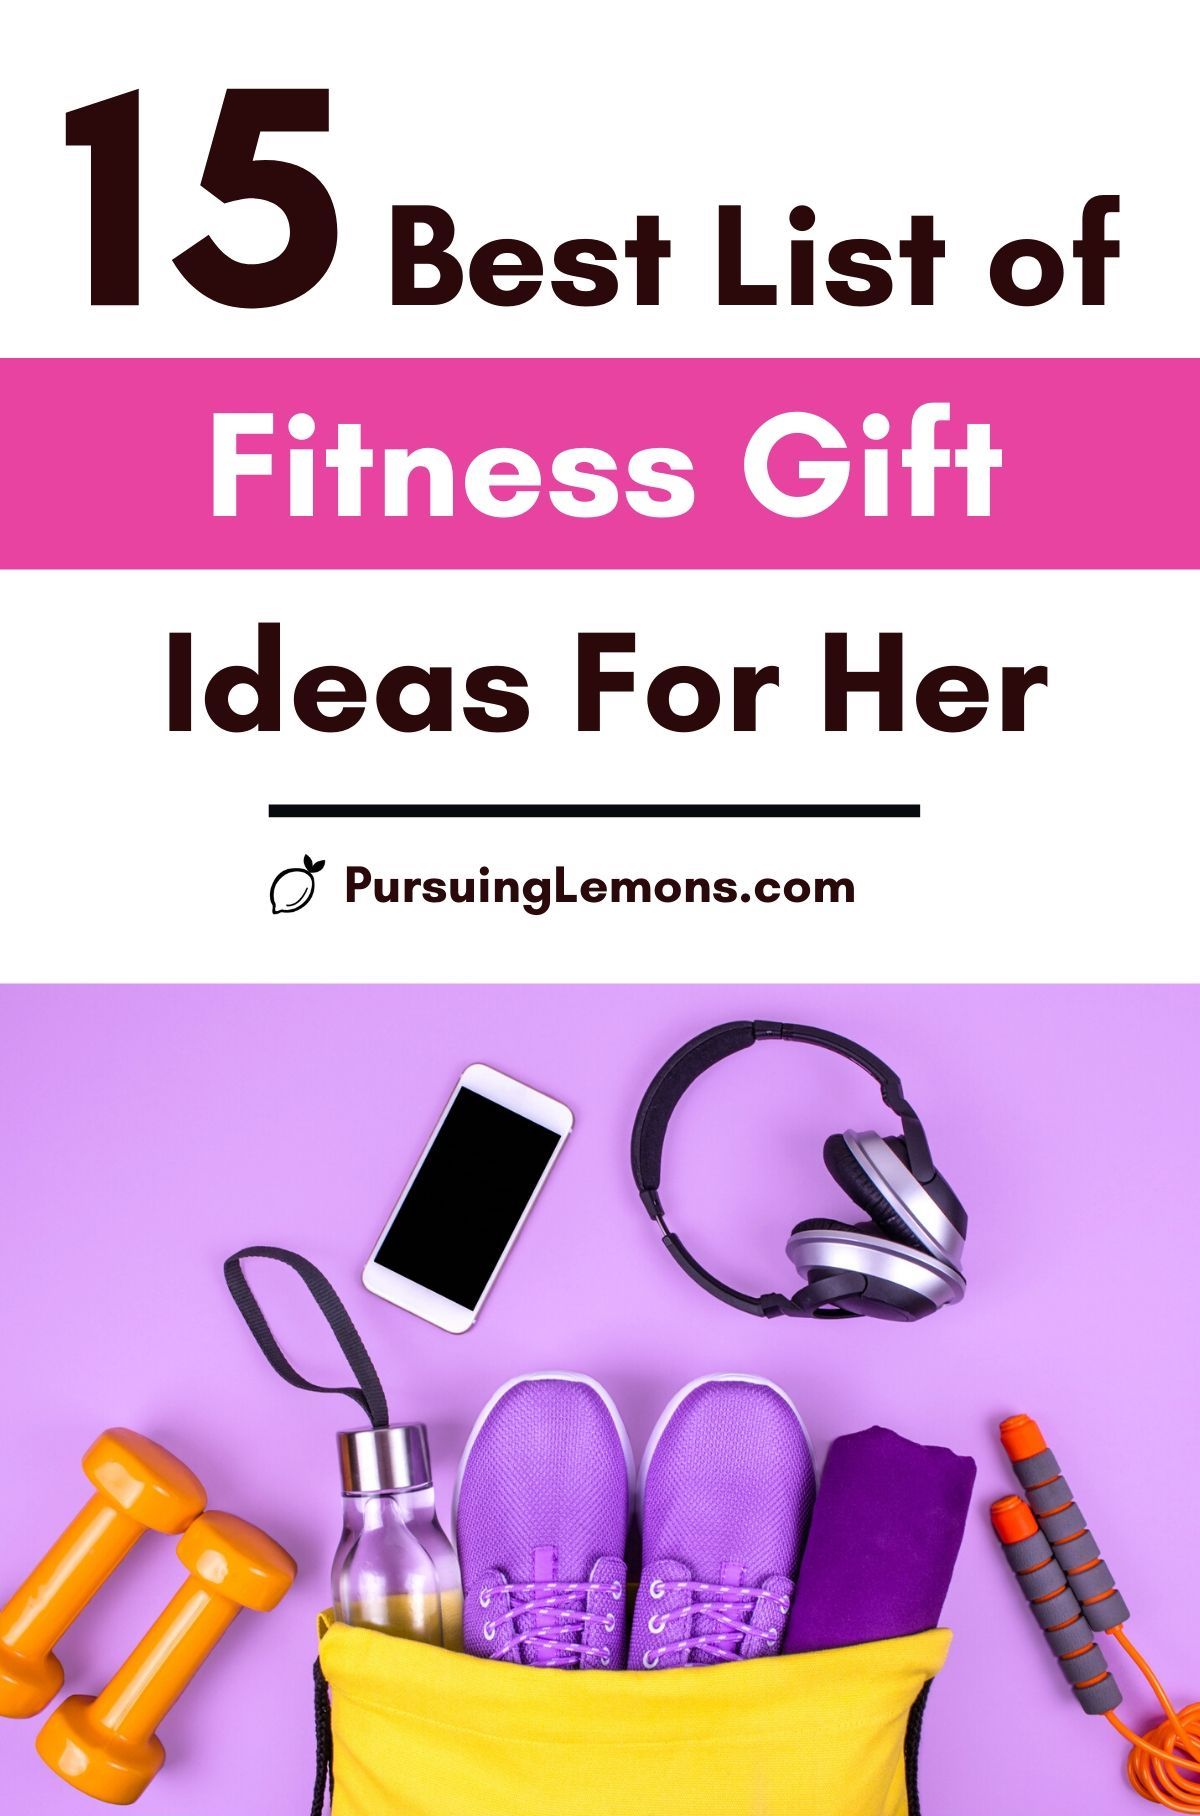 The Best List Of Fitness Gift Ideas For Her: health and fitness gifts, workout gifts for her, gym lover gifts, womens fitness gifts, best fitness gifts, and workout presents.  If you're looking for the best fitness gift ideas for her, start with this list! #fitnessgift #giftguidefitness #fitnessgiftforher